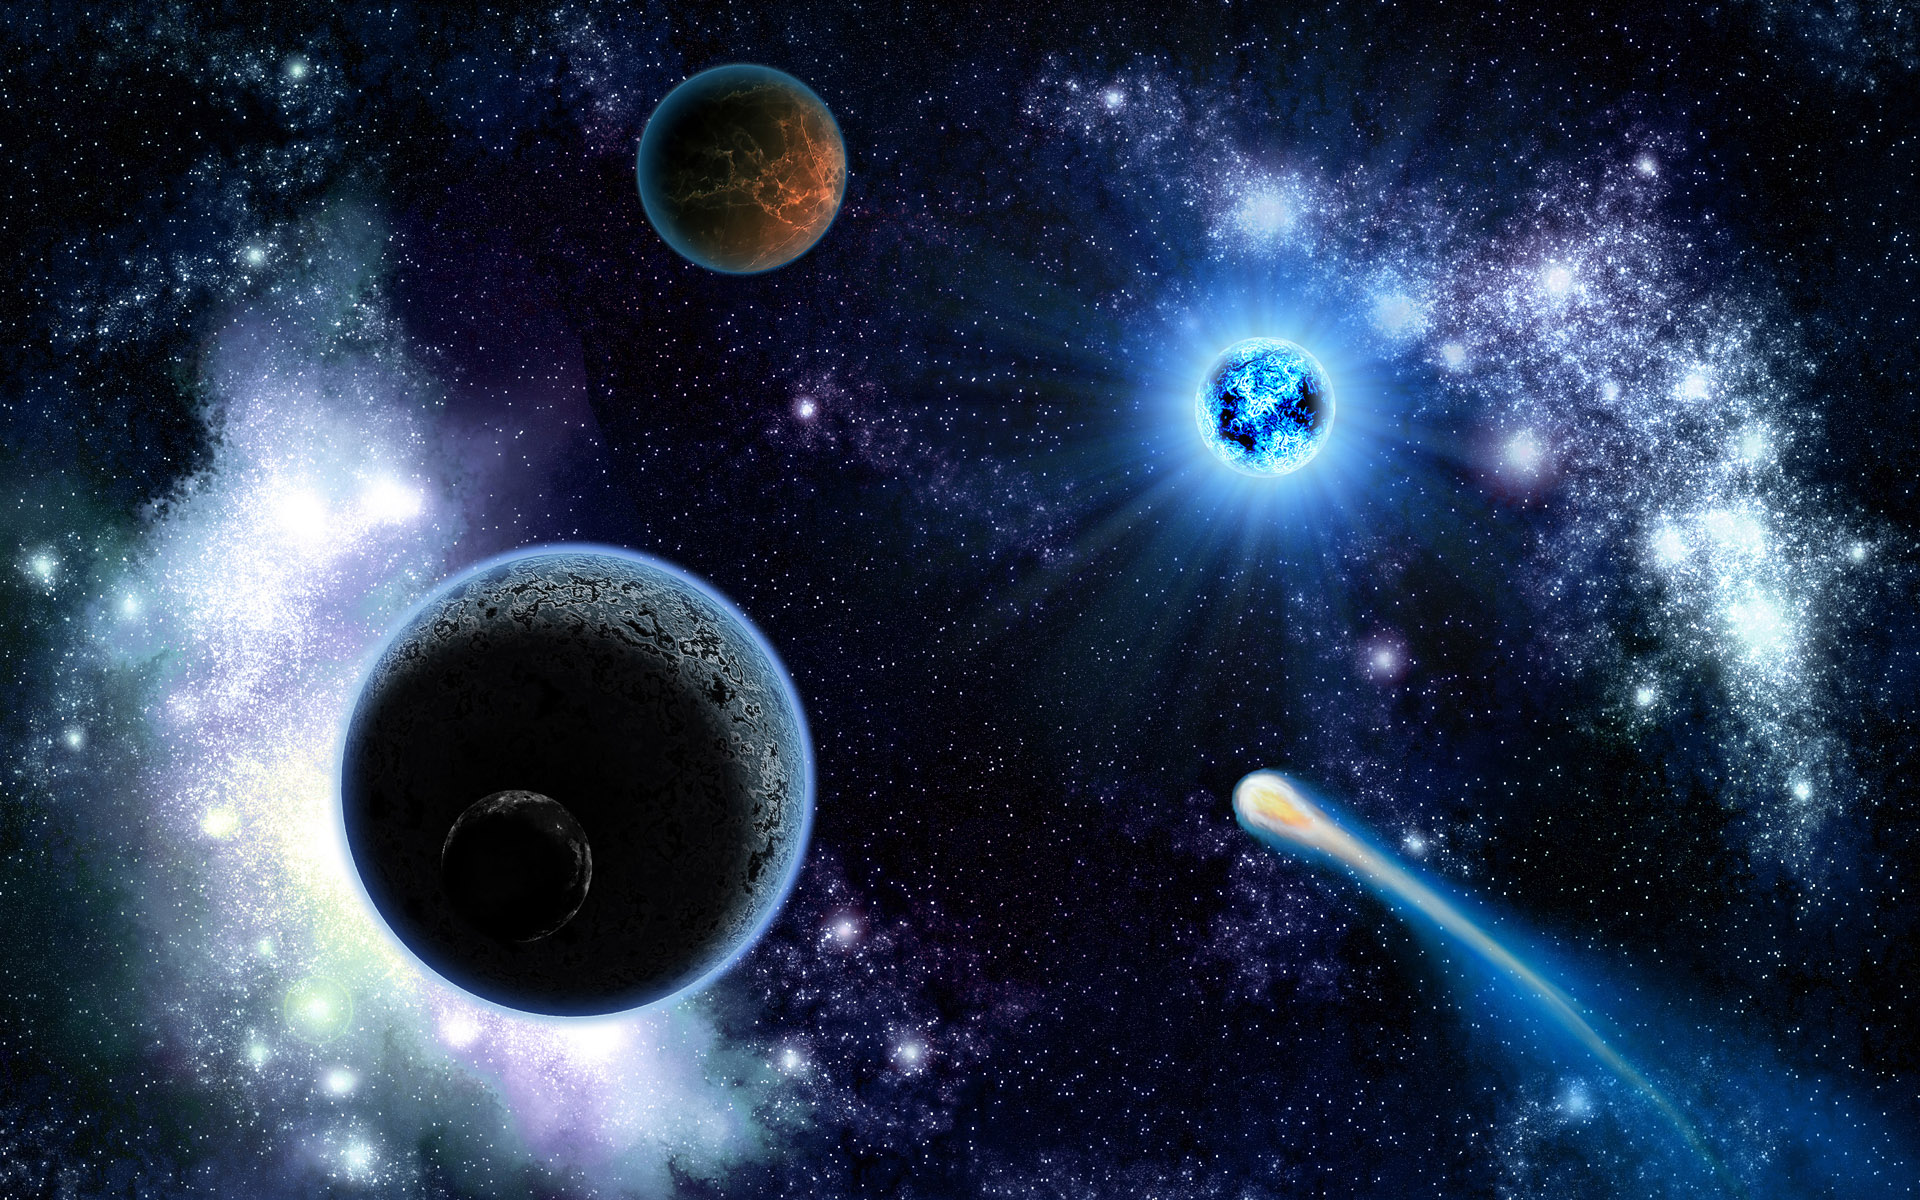 Space Planets And Comets   Wallpaper 9985 1920x1200